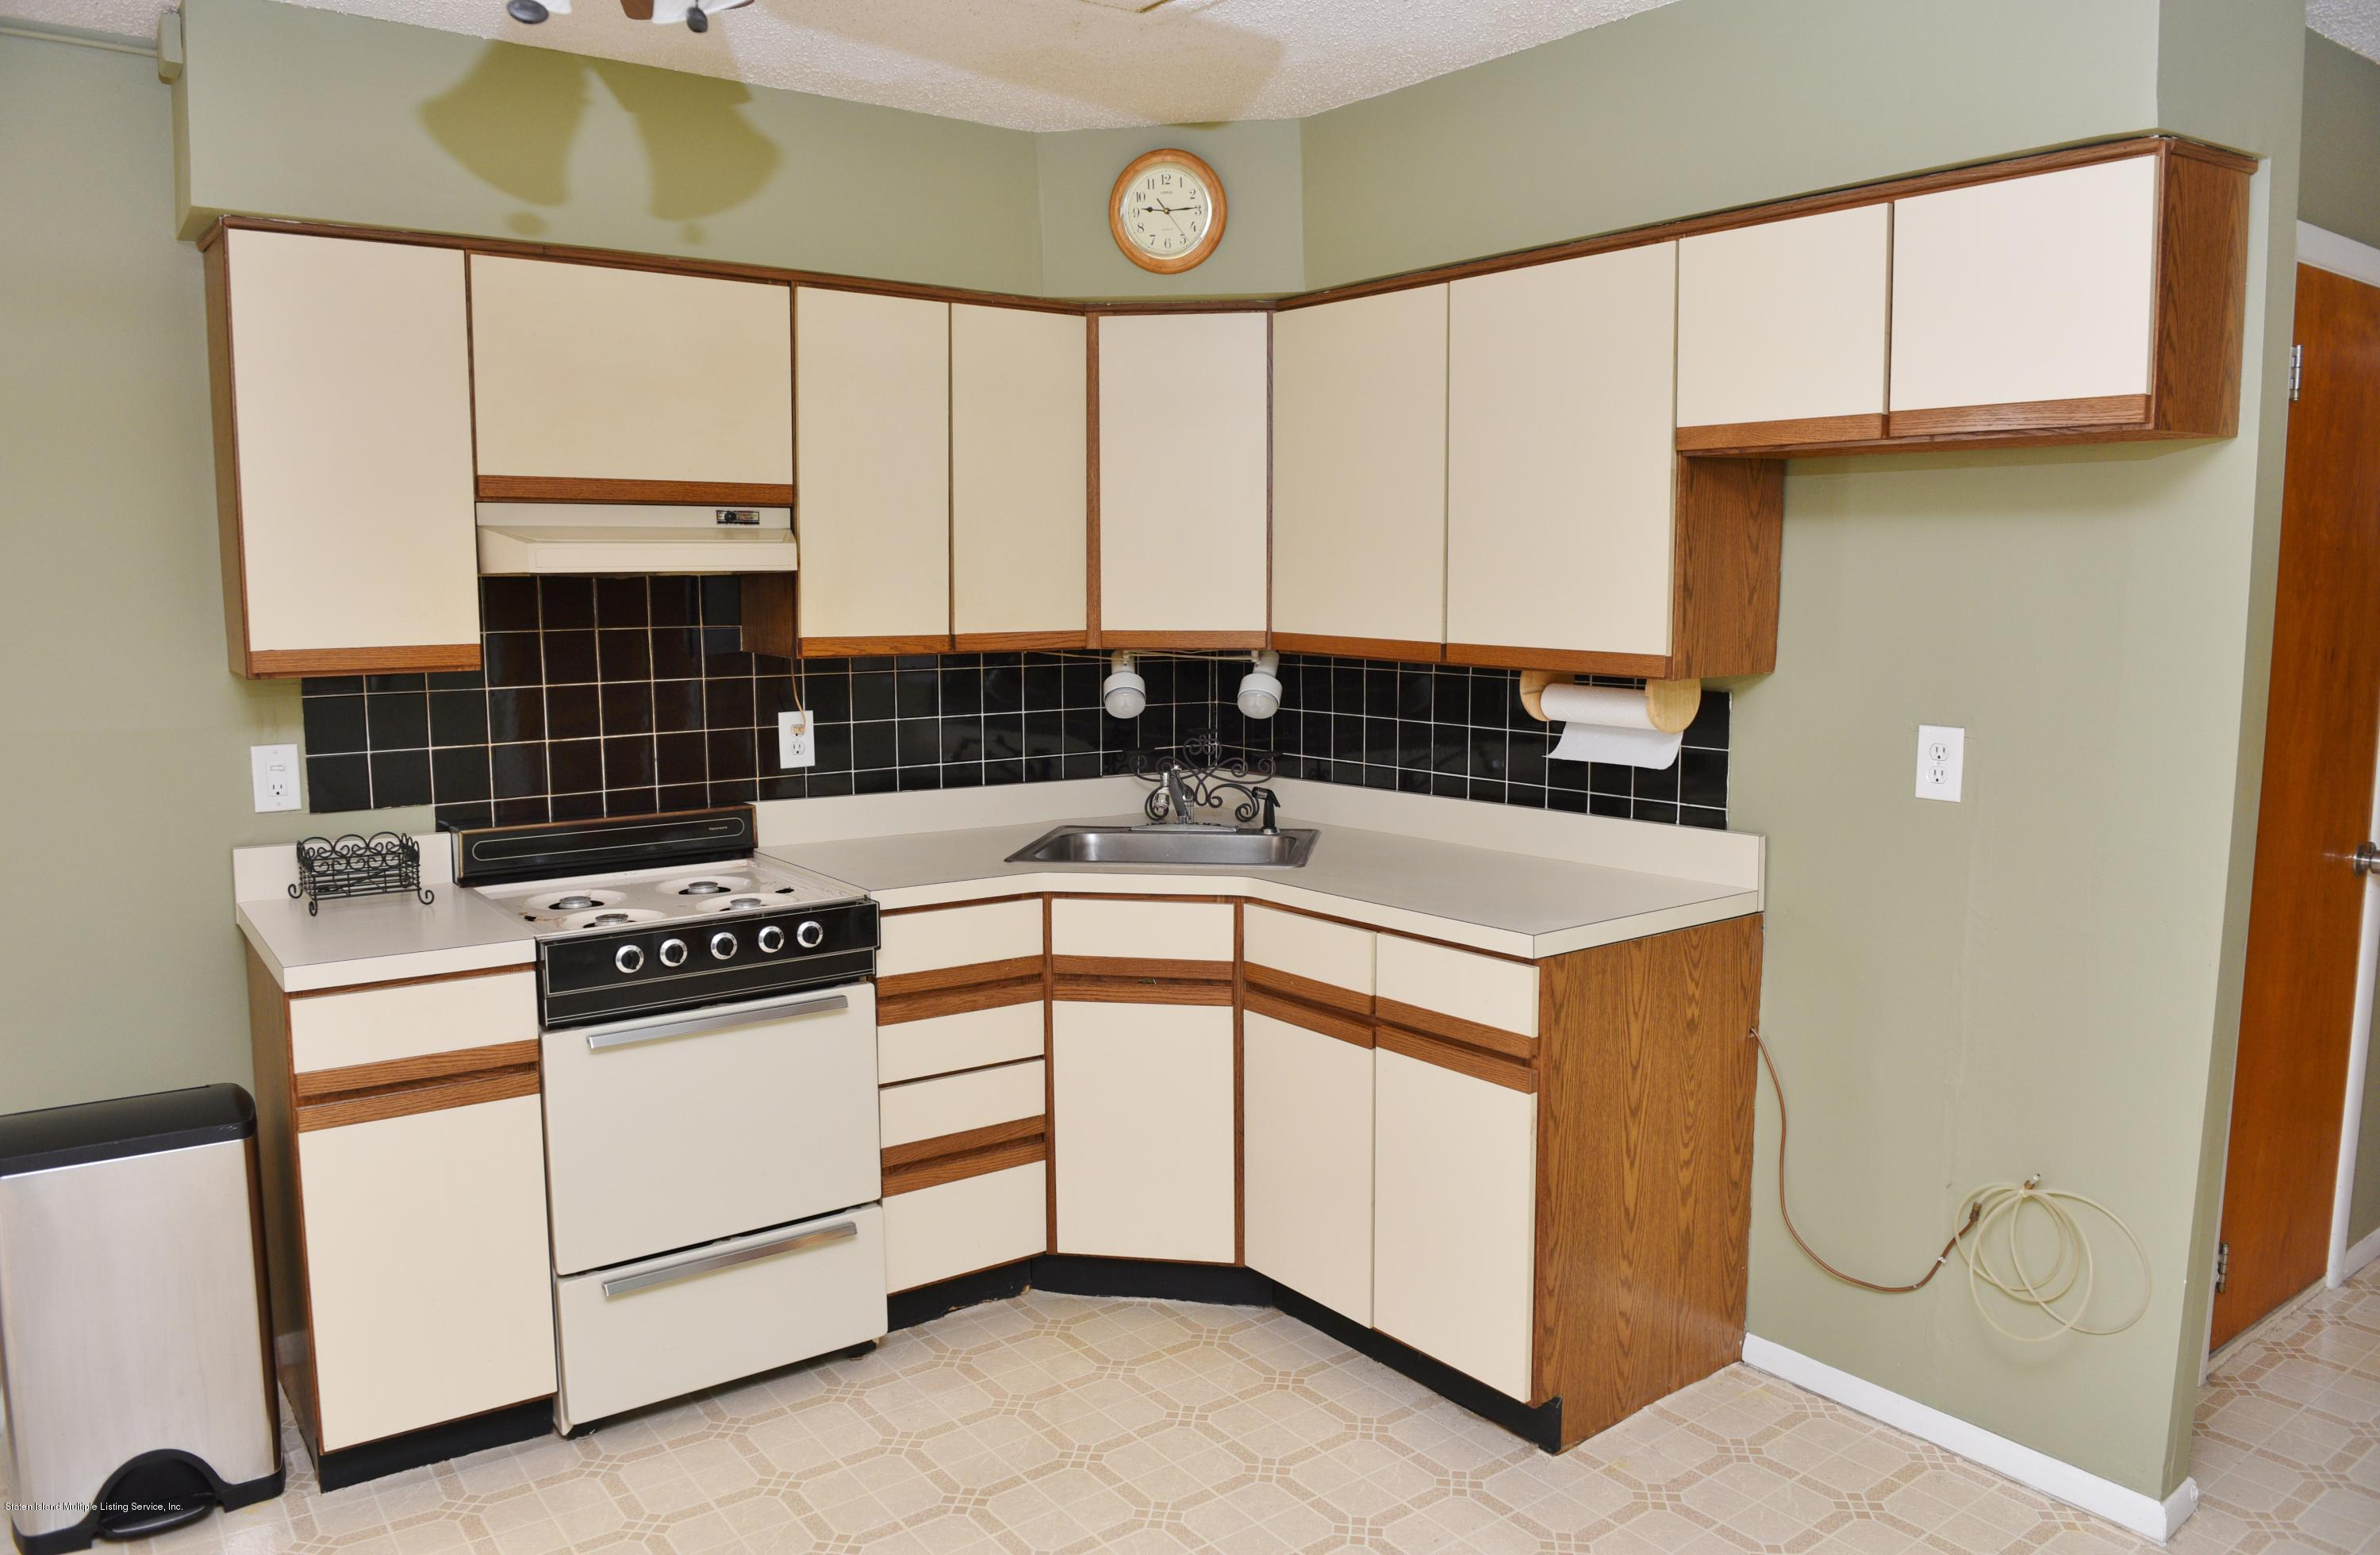 Single Family - Detached 41 Prices Lane  Staten Island, NY 10314, MLS-1129754-34